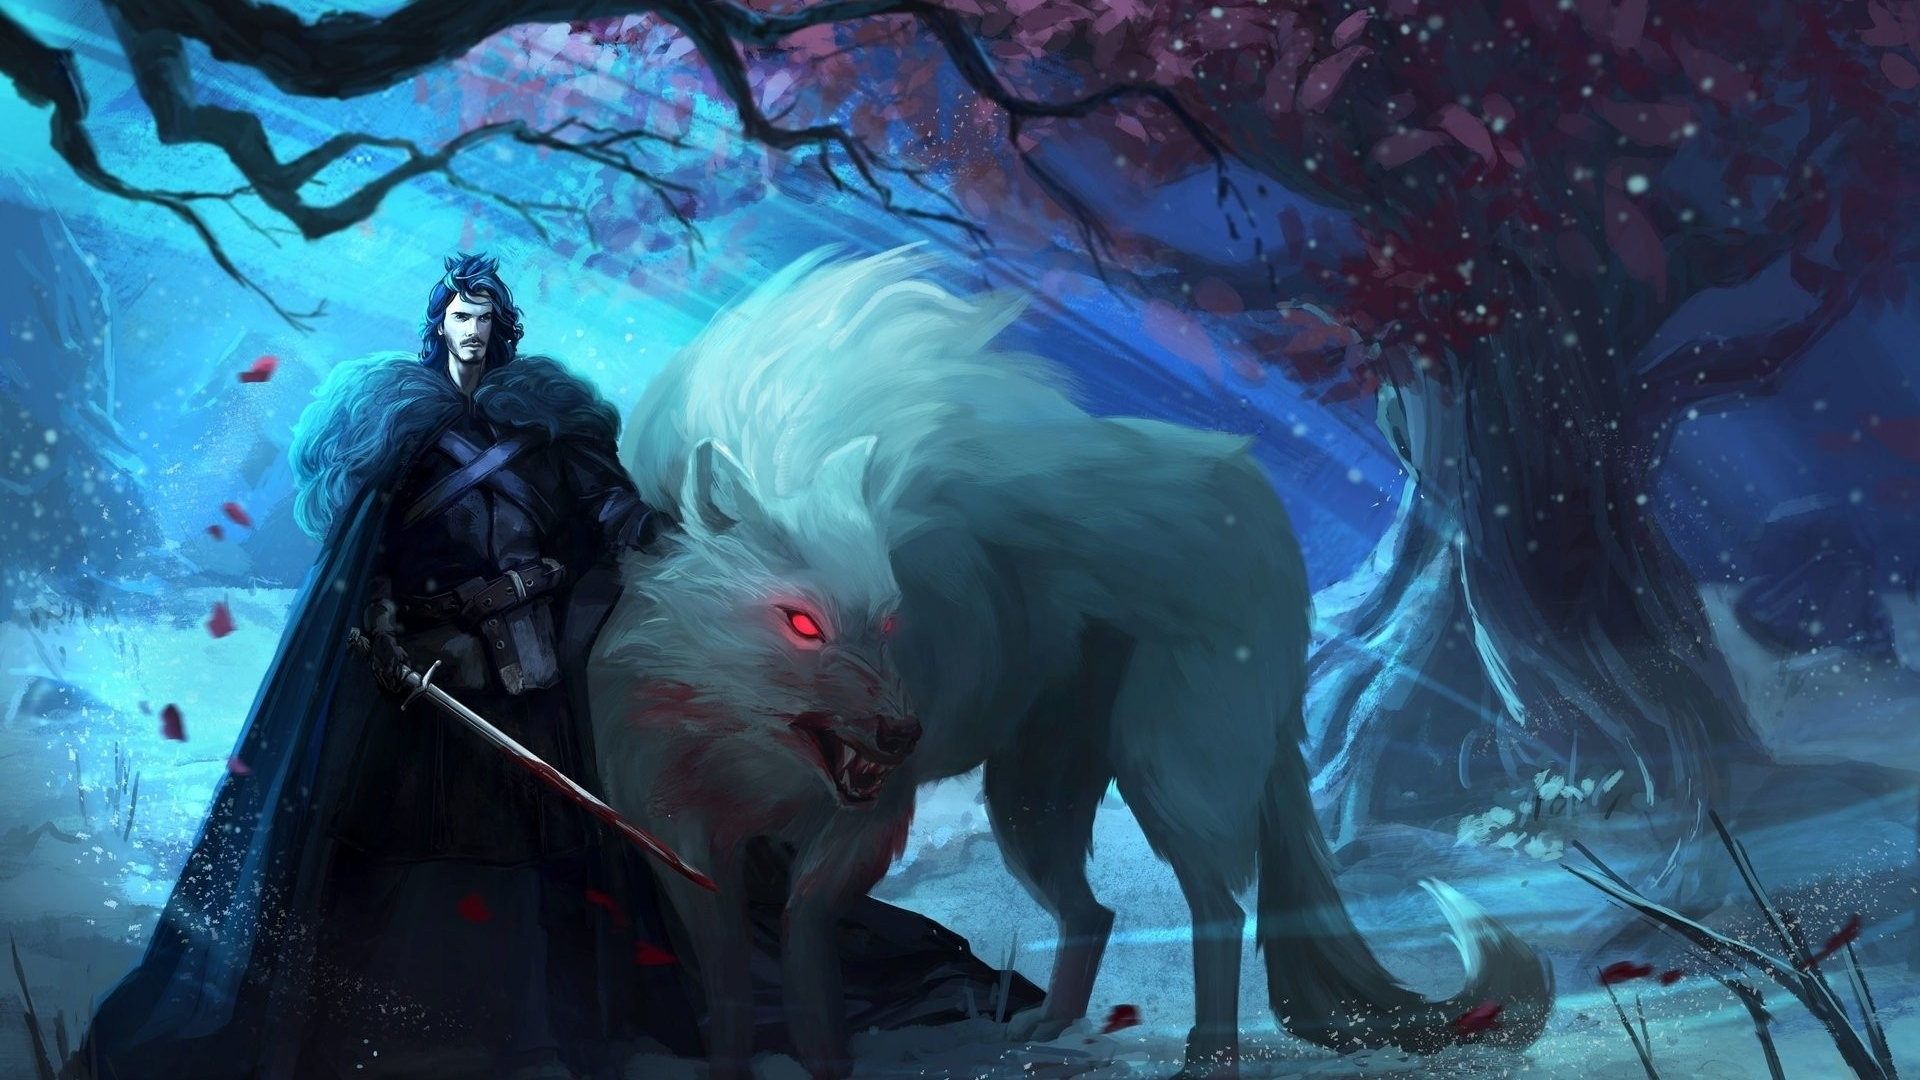 1920x1080 Fantasy - A Song Of Ice And Fire Game Of Thrones Jon Snow Wallpaper